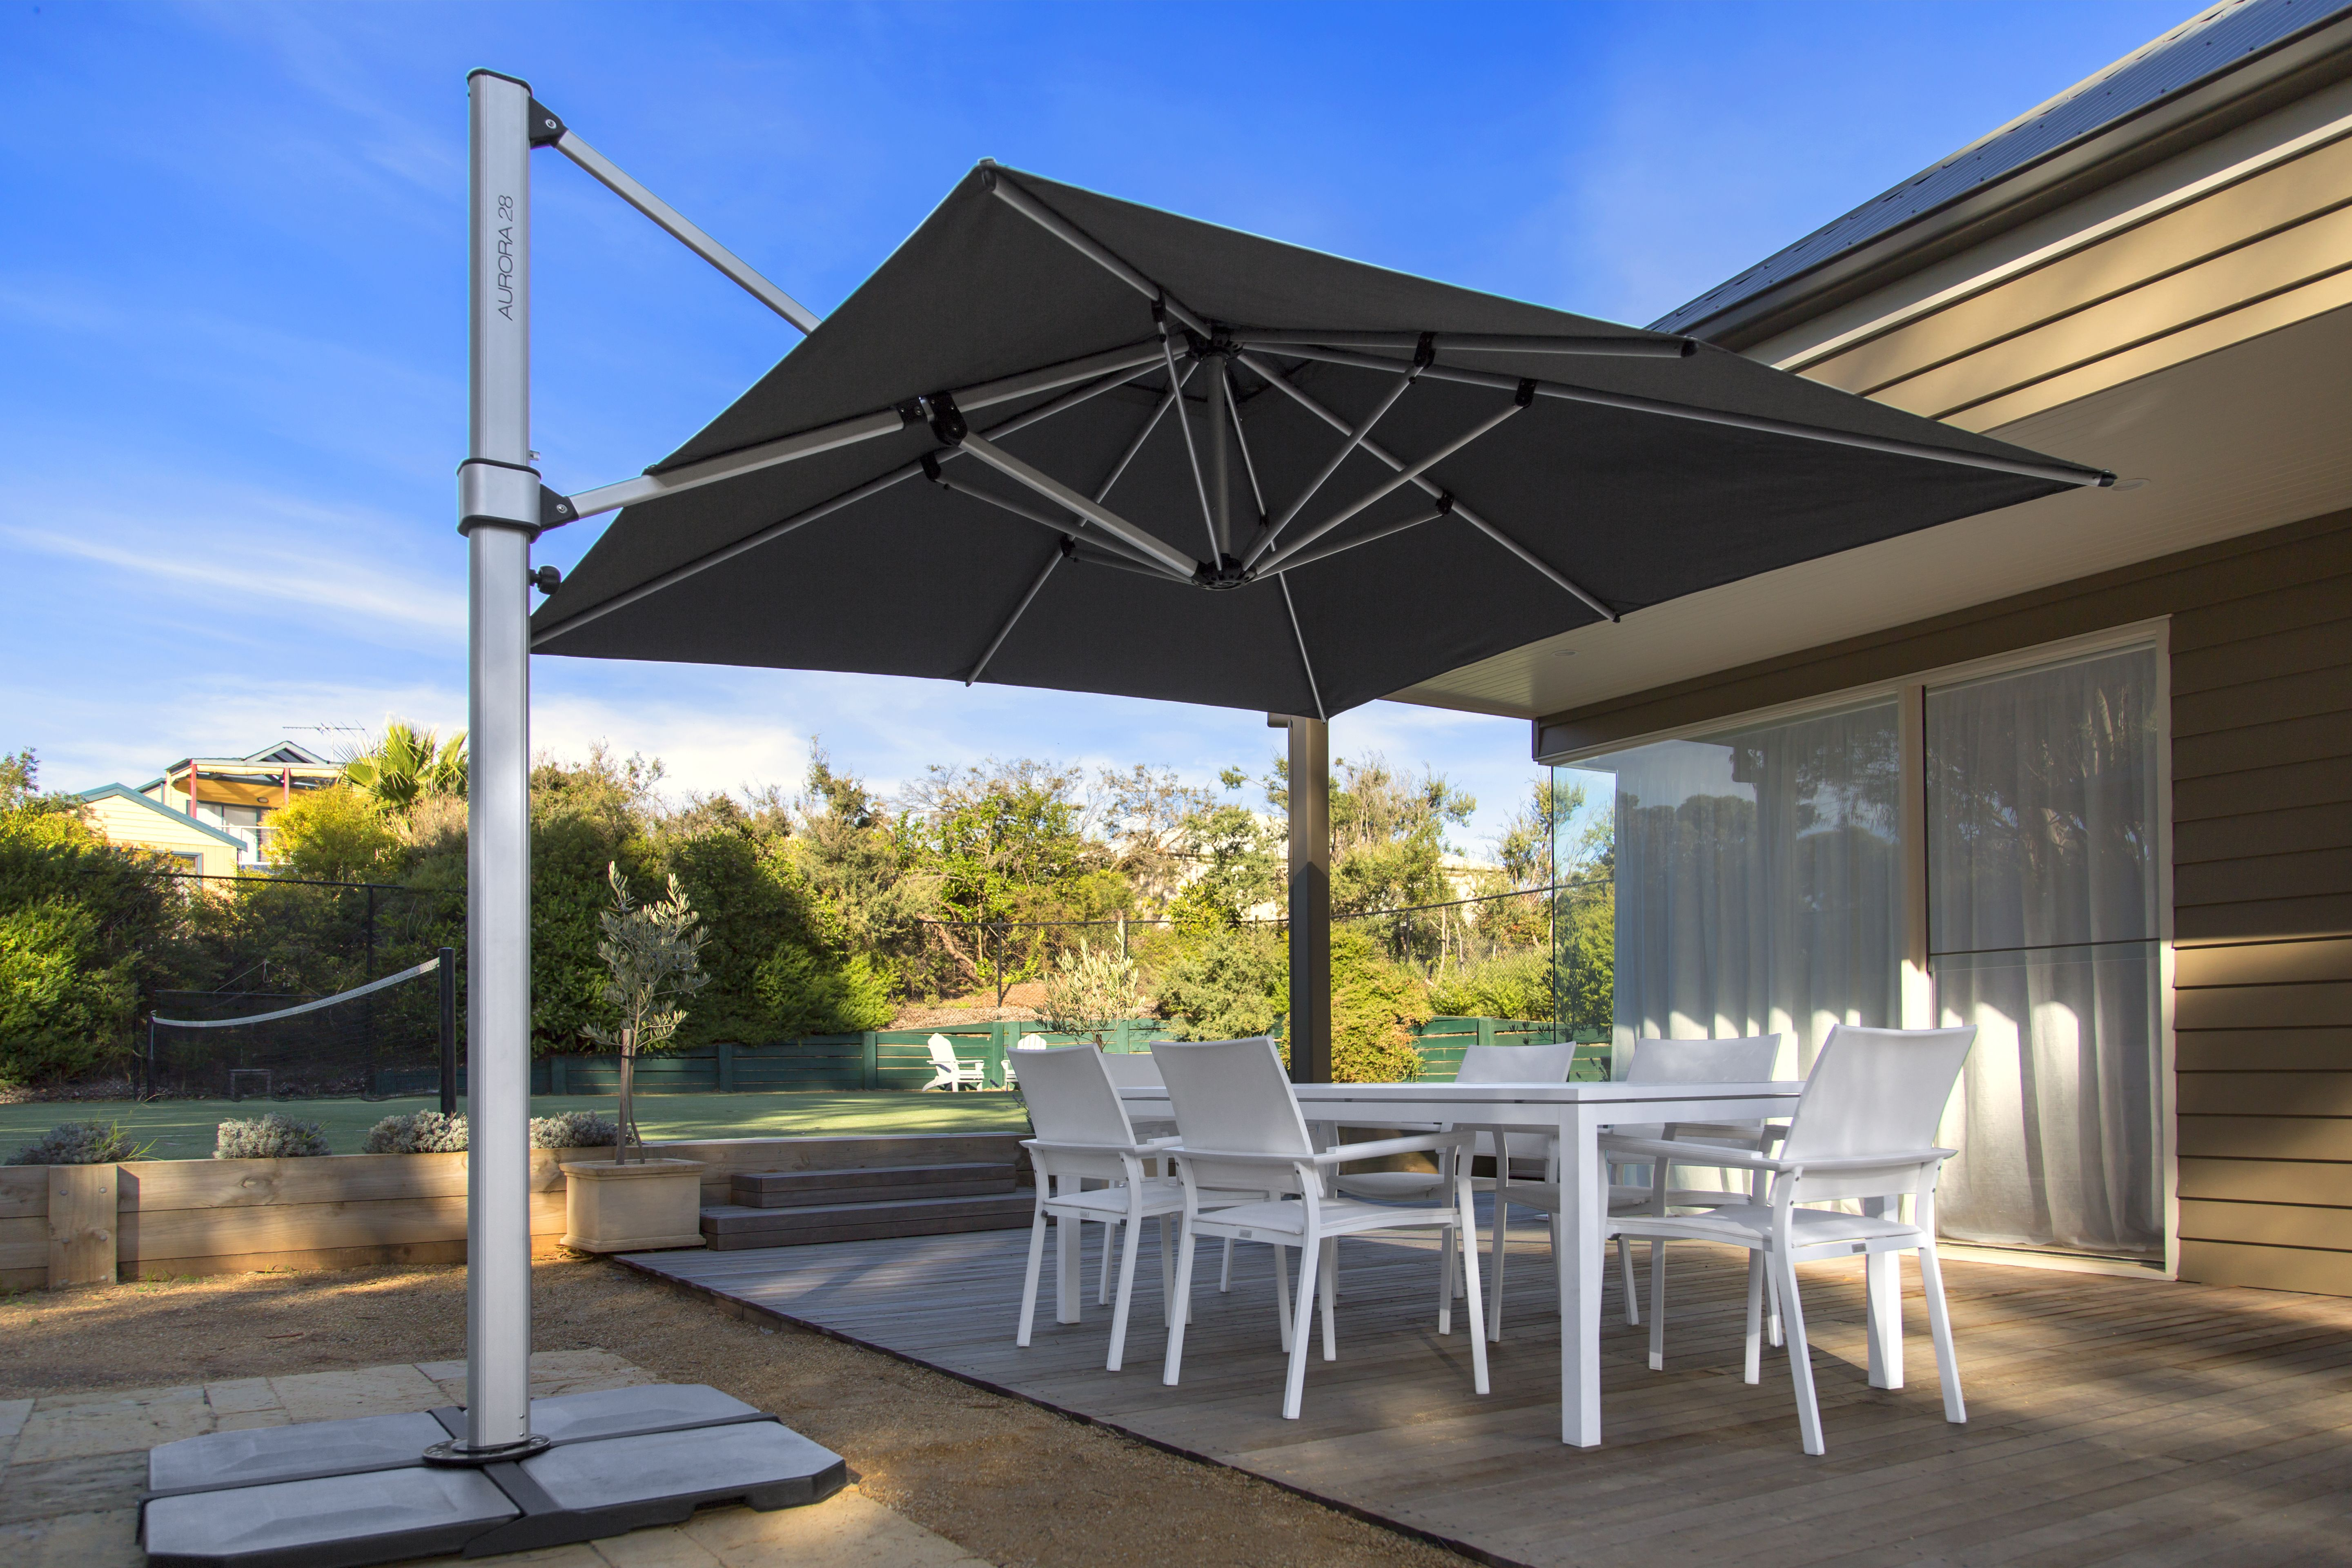 Find high quality mercial patio umbrellas from Resort Contract